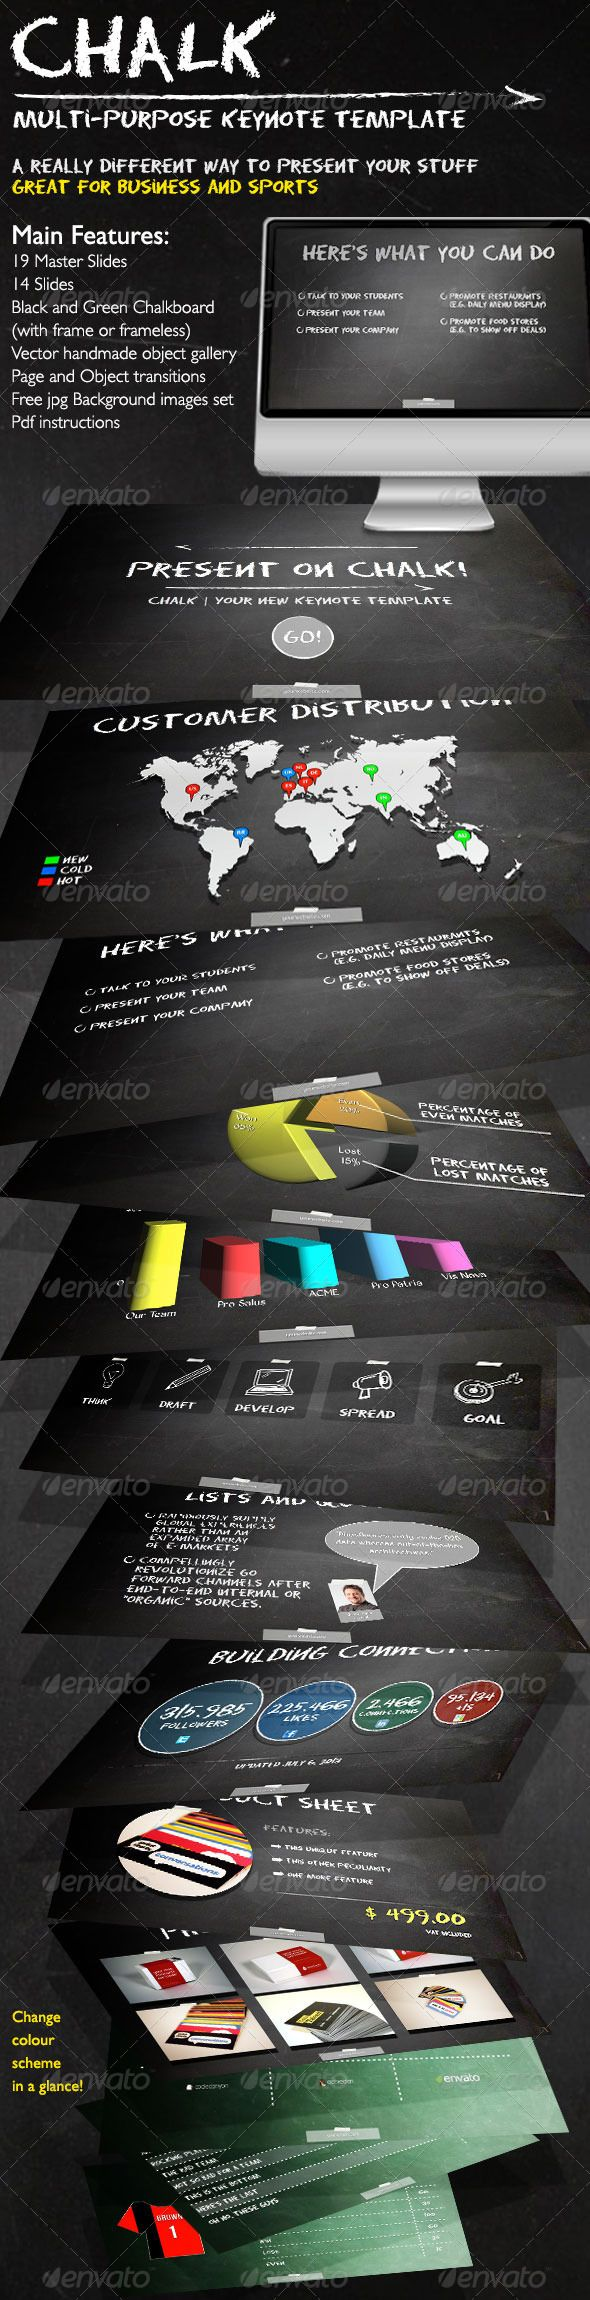 """Chalk - Business and Sports Keynote Template  #GraphicRiver         Chalk is a Keynote template that helps you to present your business or your sport team in a clear yet alternative way.  Features     25 Master Slides (including library)     24 Slides     Black and Green Chalkboard   Vector object gallery (including vector """"chalk style"""" social network icons)   Page and Object transitions     Free jpg Background images set     Pdf instructions   See it in Action  Chalk in Action  Fonts Used…"""